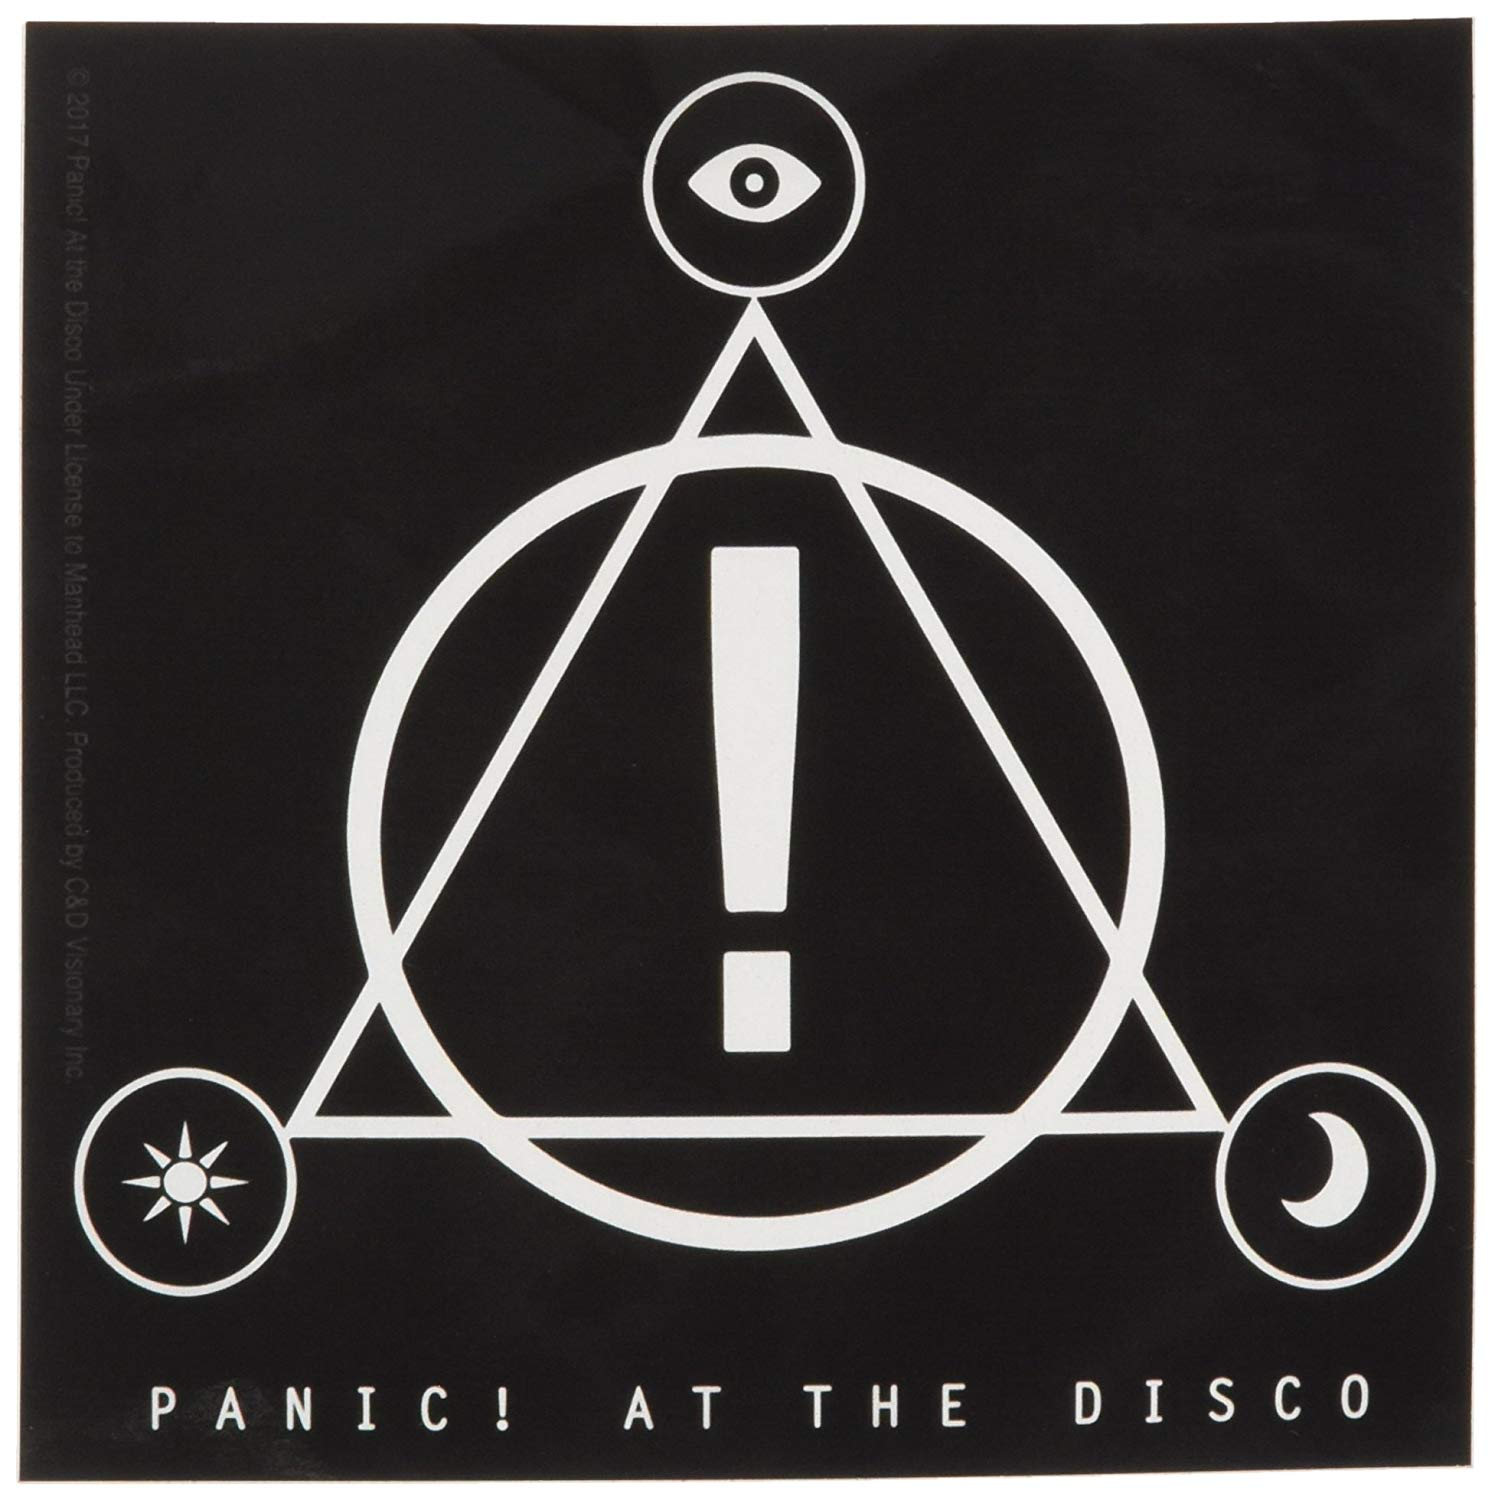 Buy C&D Visionary Panic at The Disco Triangle Logo Sticker.